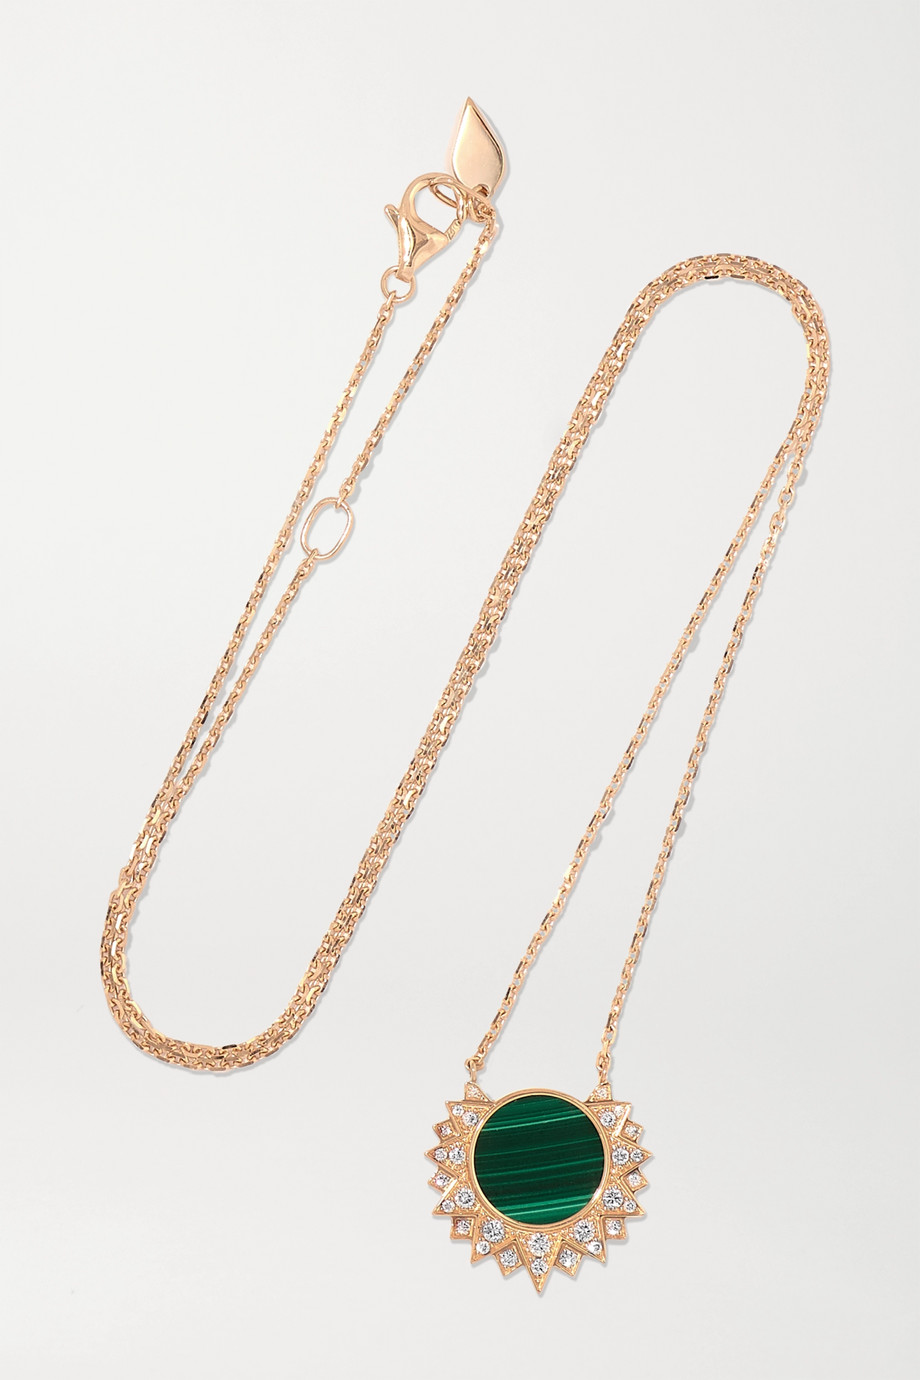 PIAGET Sunlight 18-karat rose gold, malachite and diamond necklace